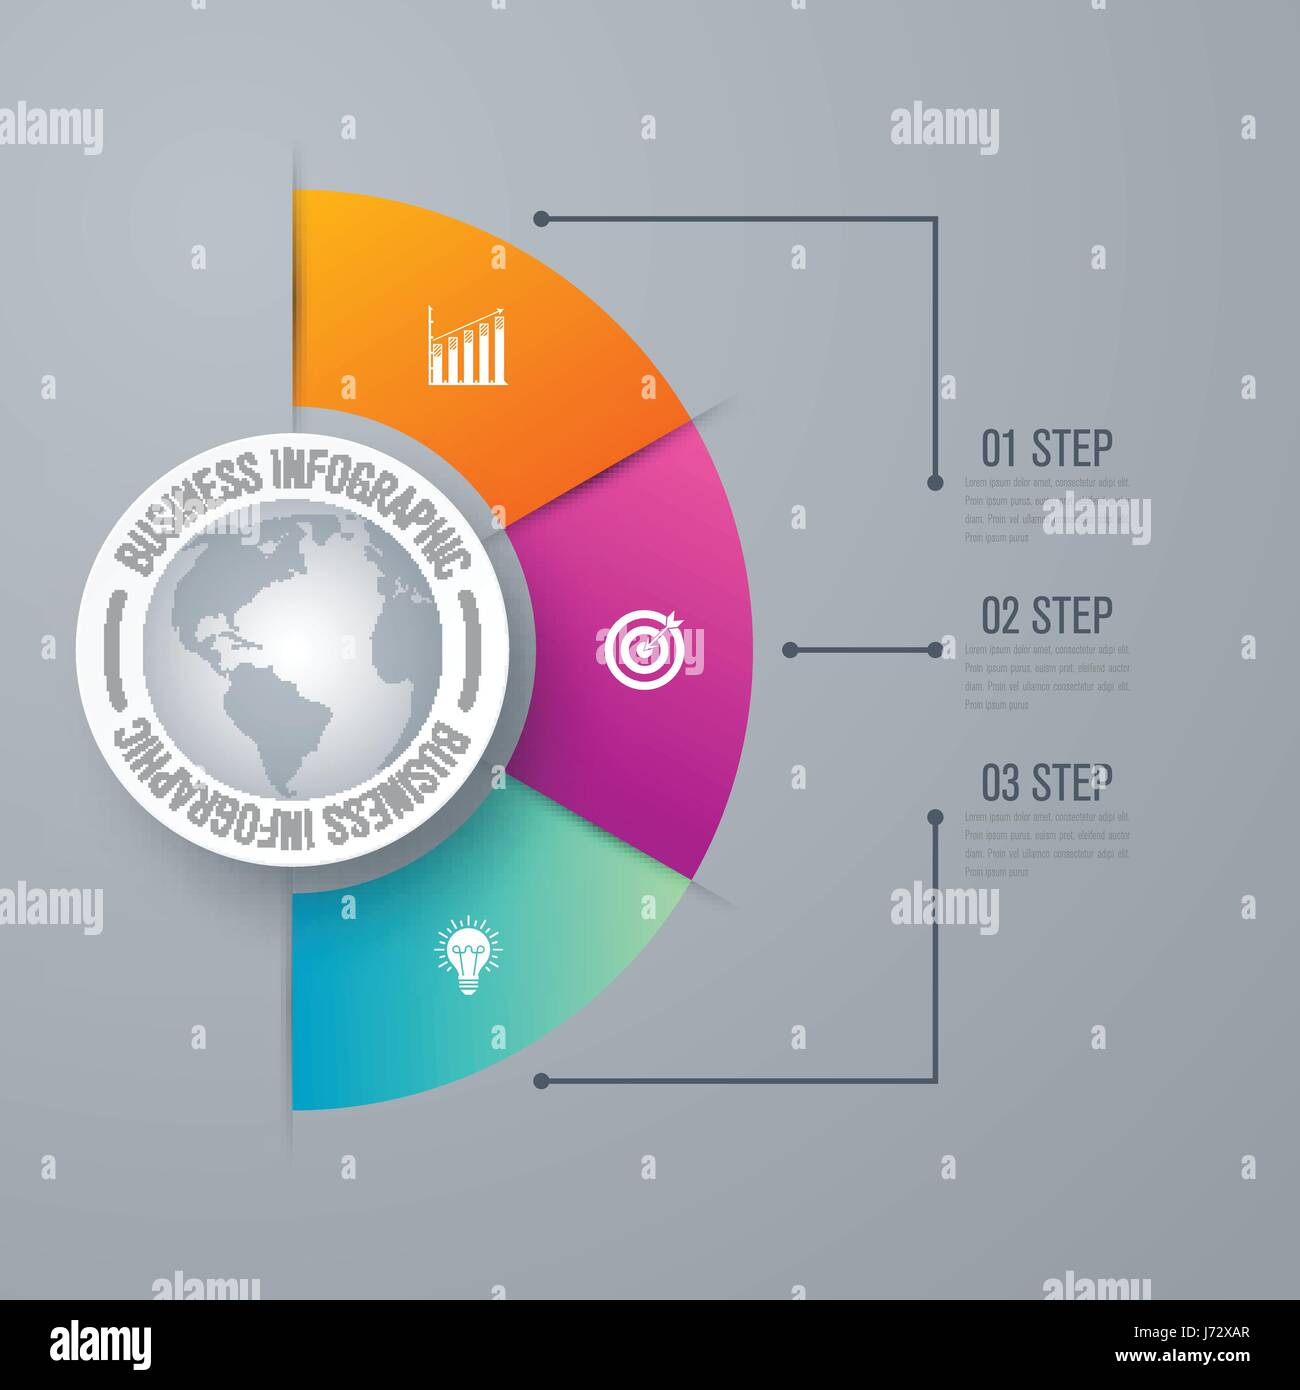 Design infographic template 3 steps - Stock Image